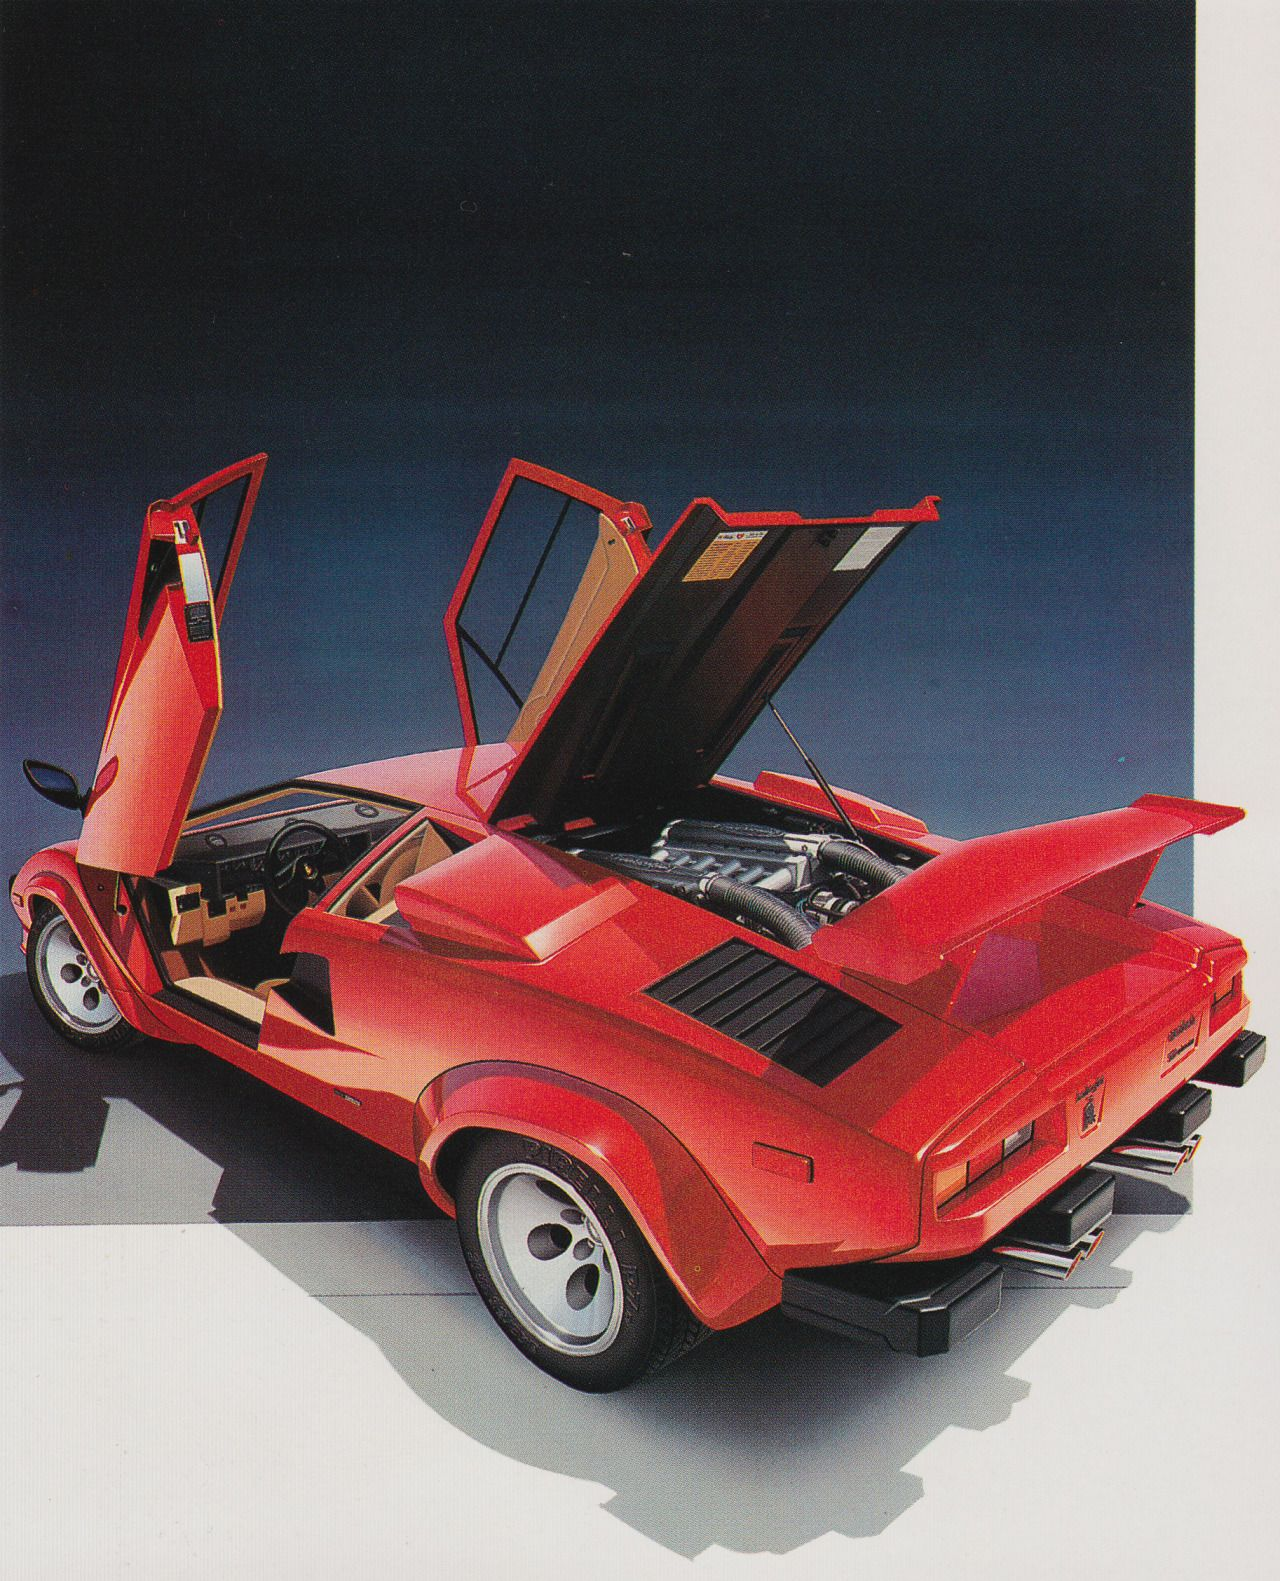 Countach Photo 1980s Graphics In 2019 Retro Cars Automotive